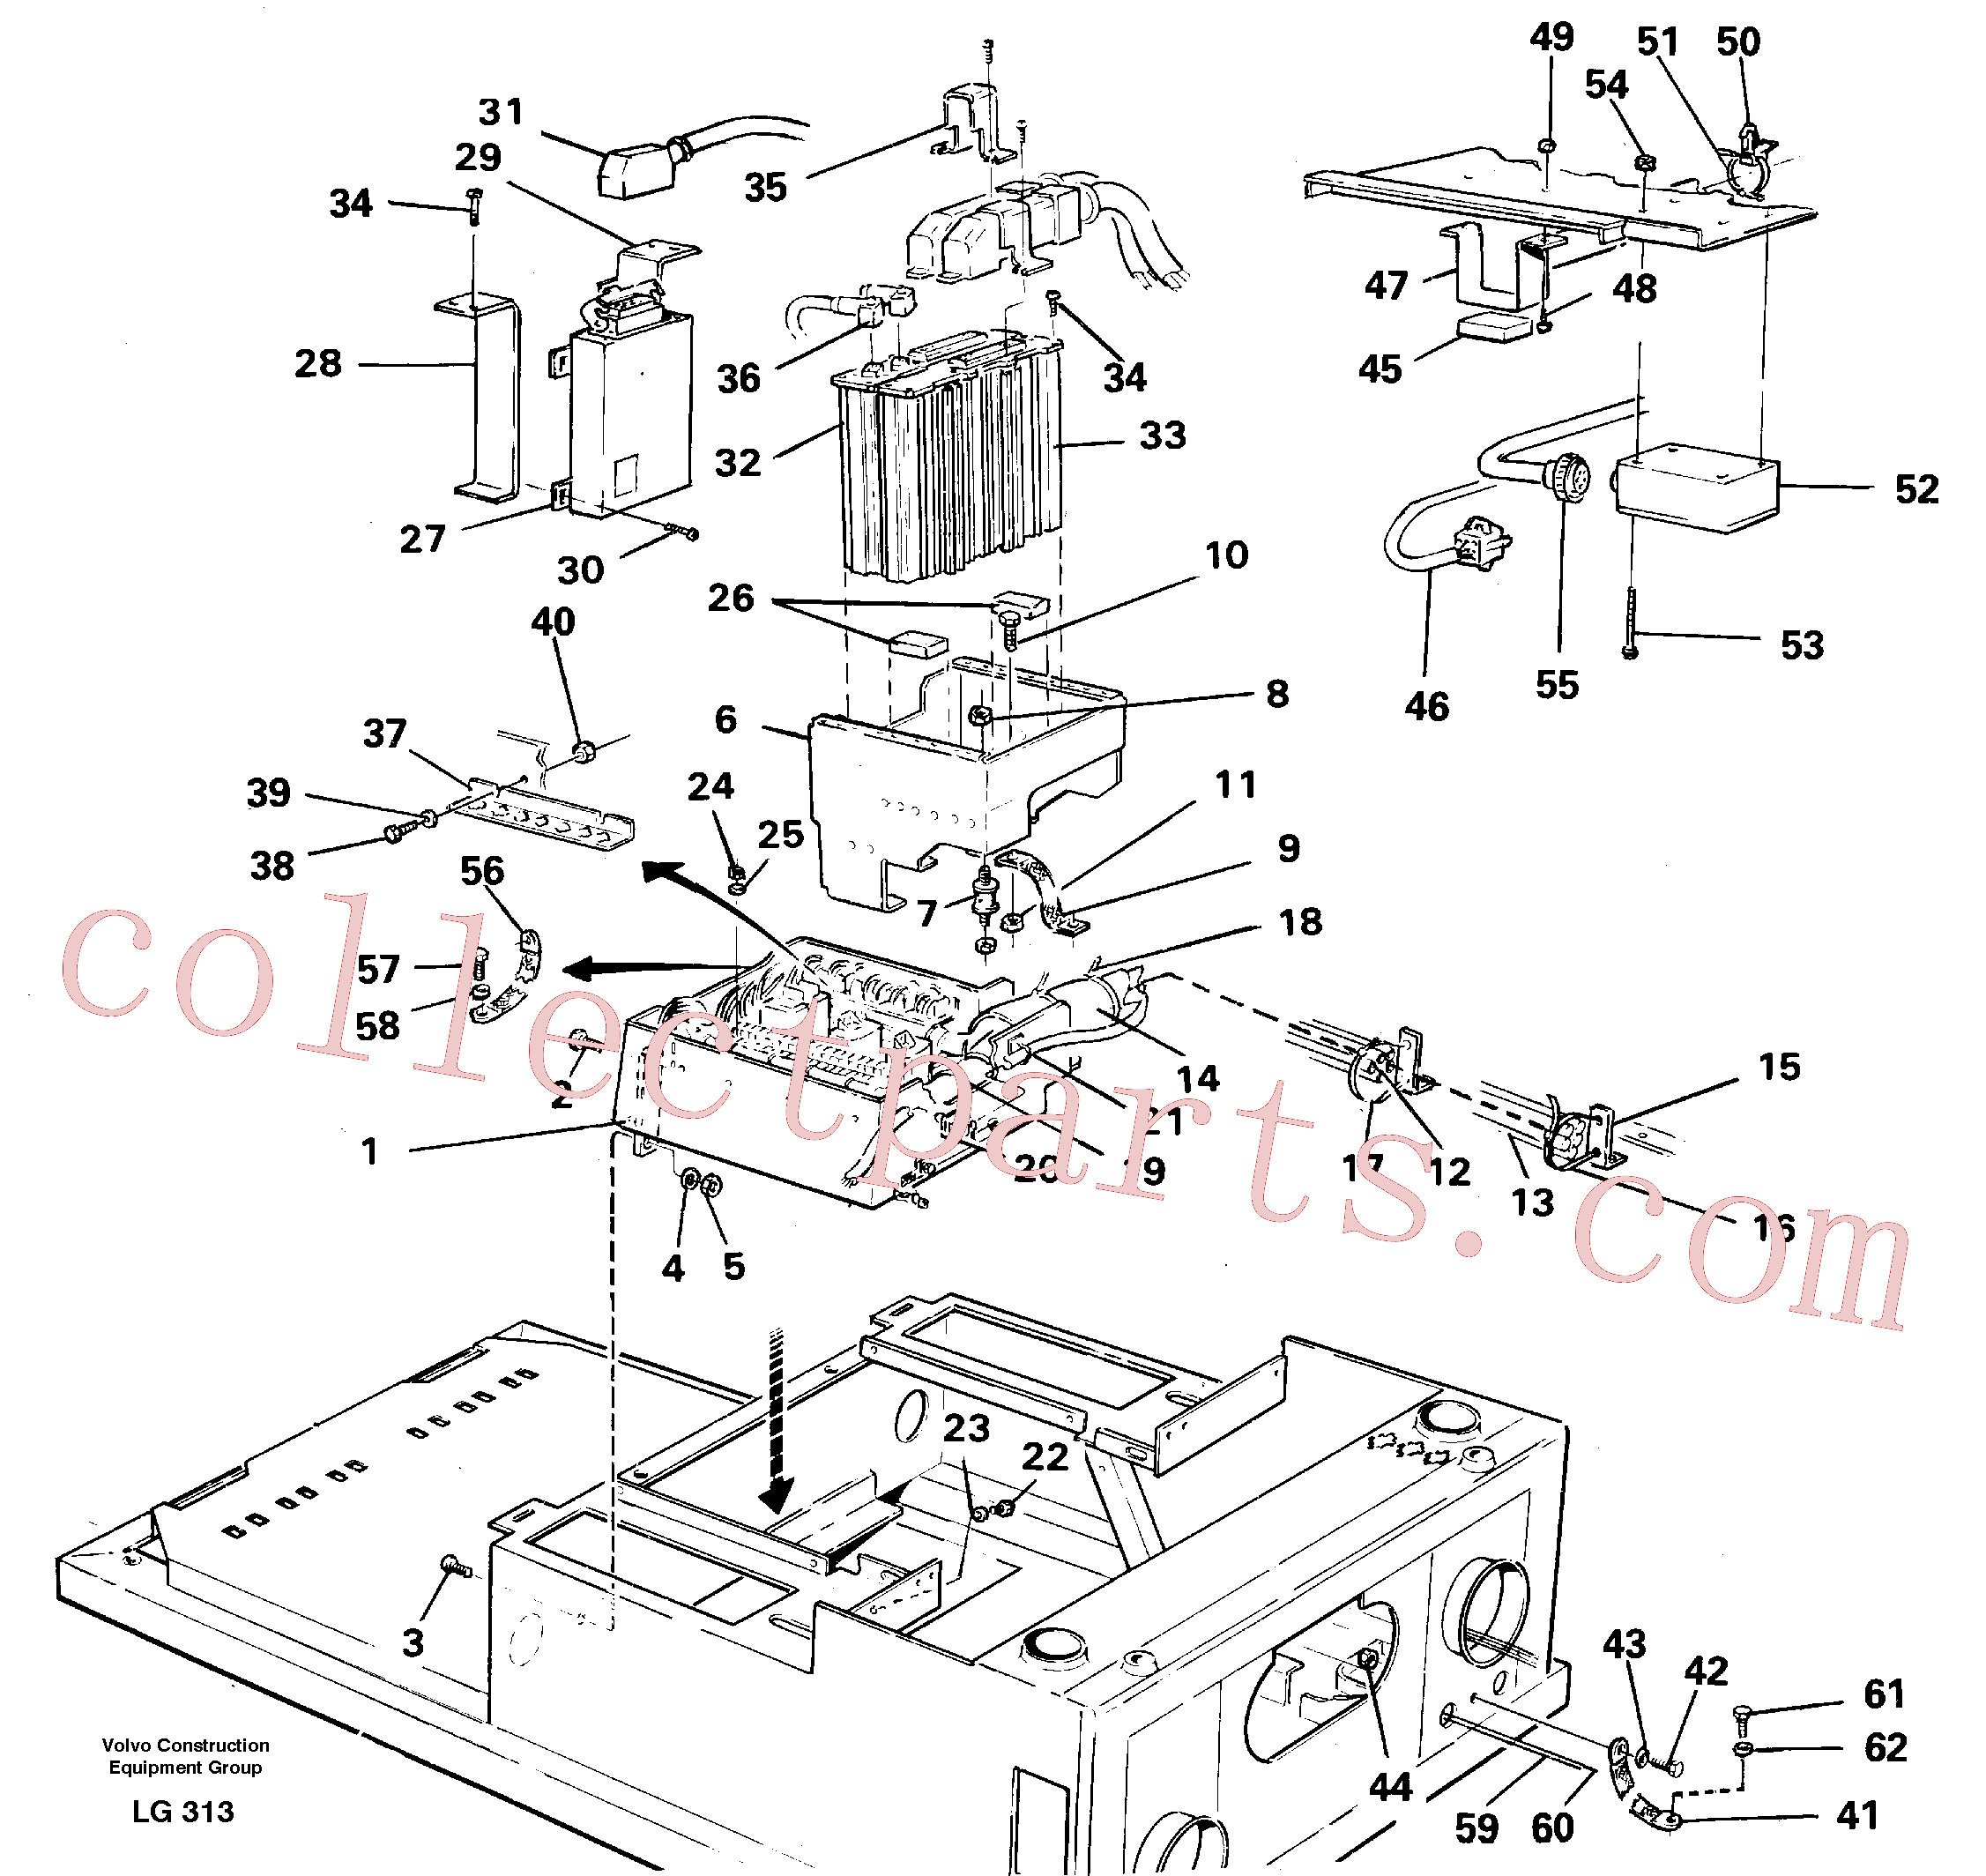 VOE14252722 for Volvo Electric installation on driver's seat(LG313 assembly)